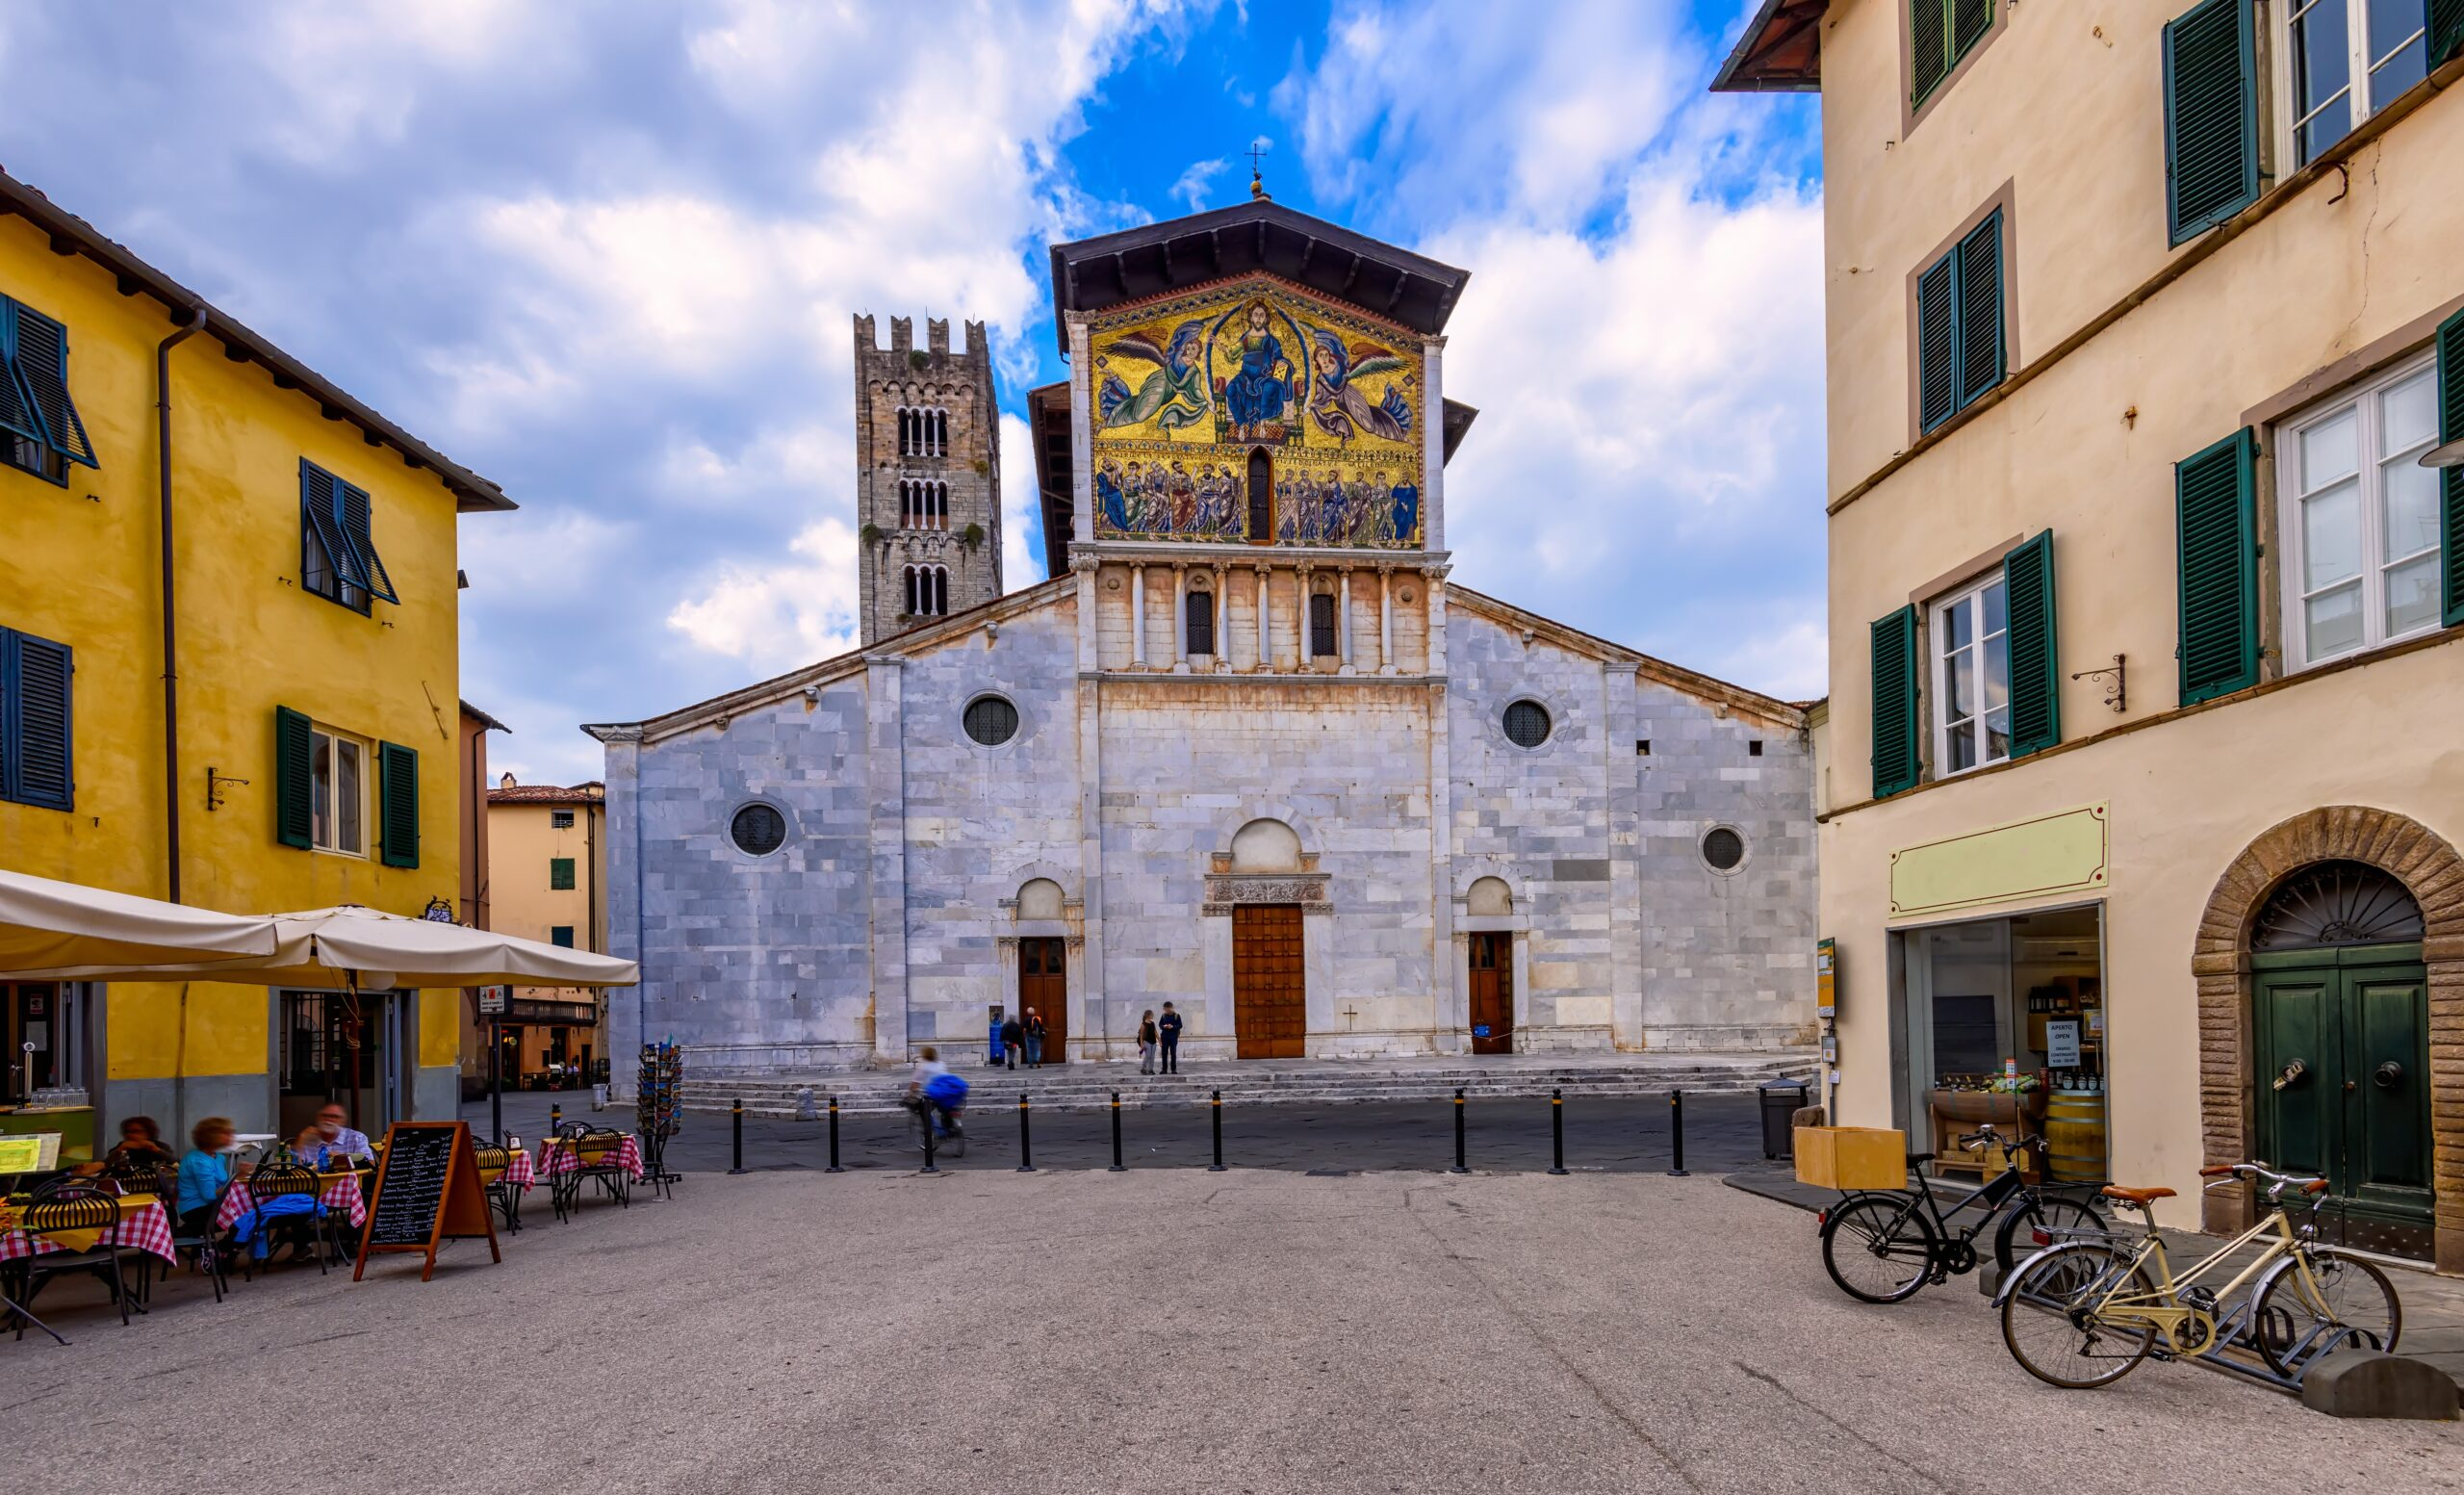 View of the historic centre of Lucca with the Basilica of Saint Frediano (12th century), a Romanesque church with a monumental golden mosaic on the facade.